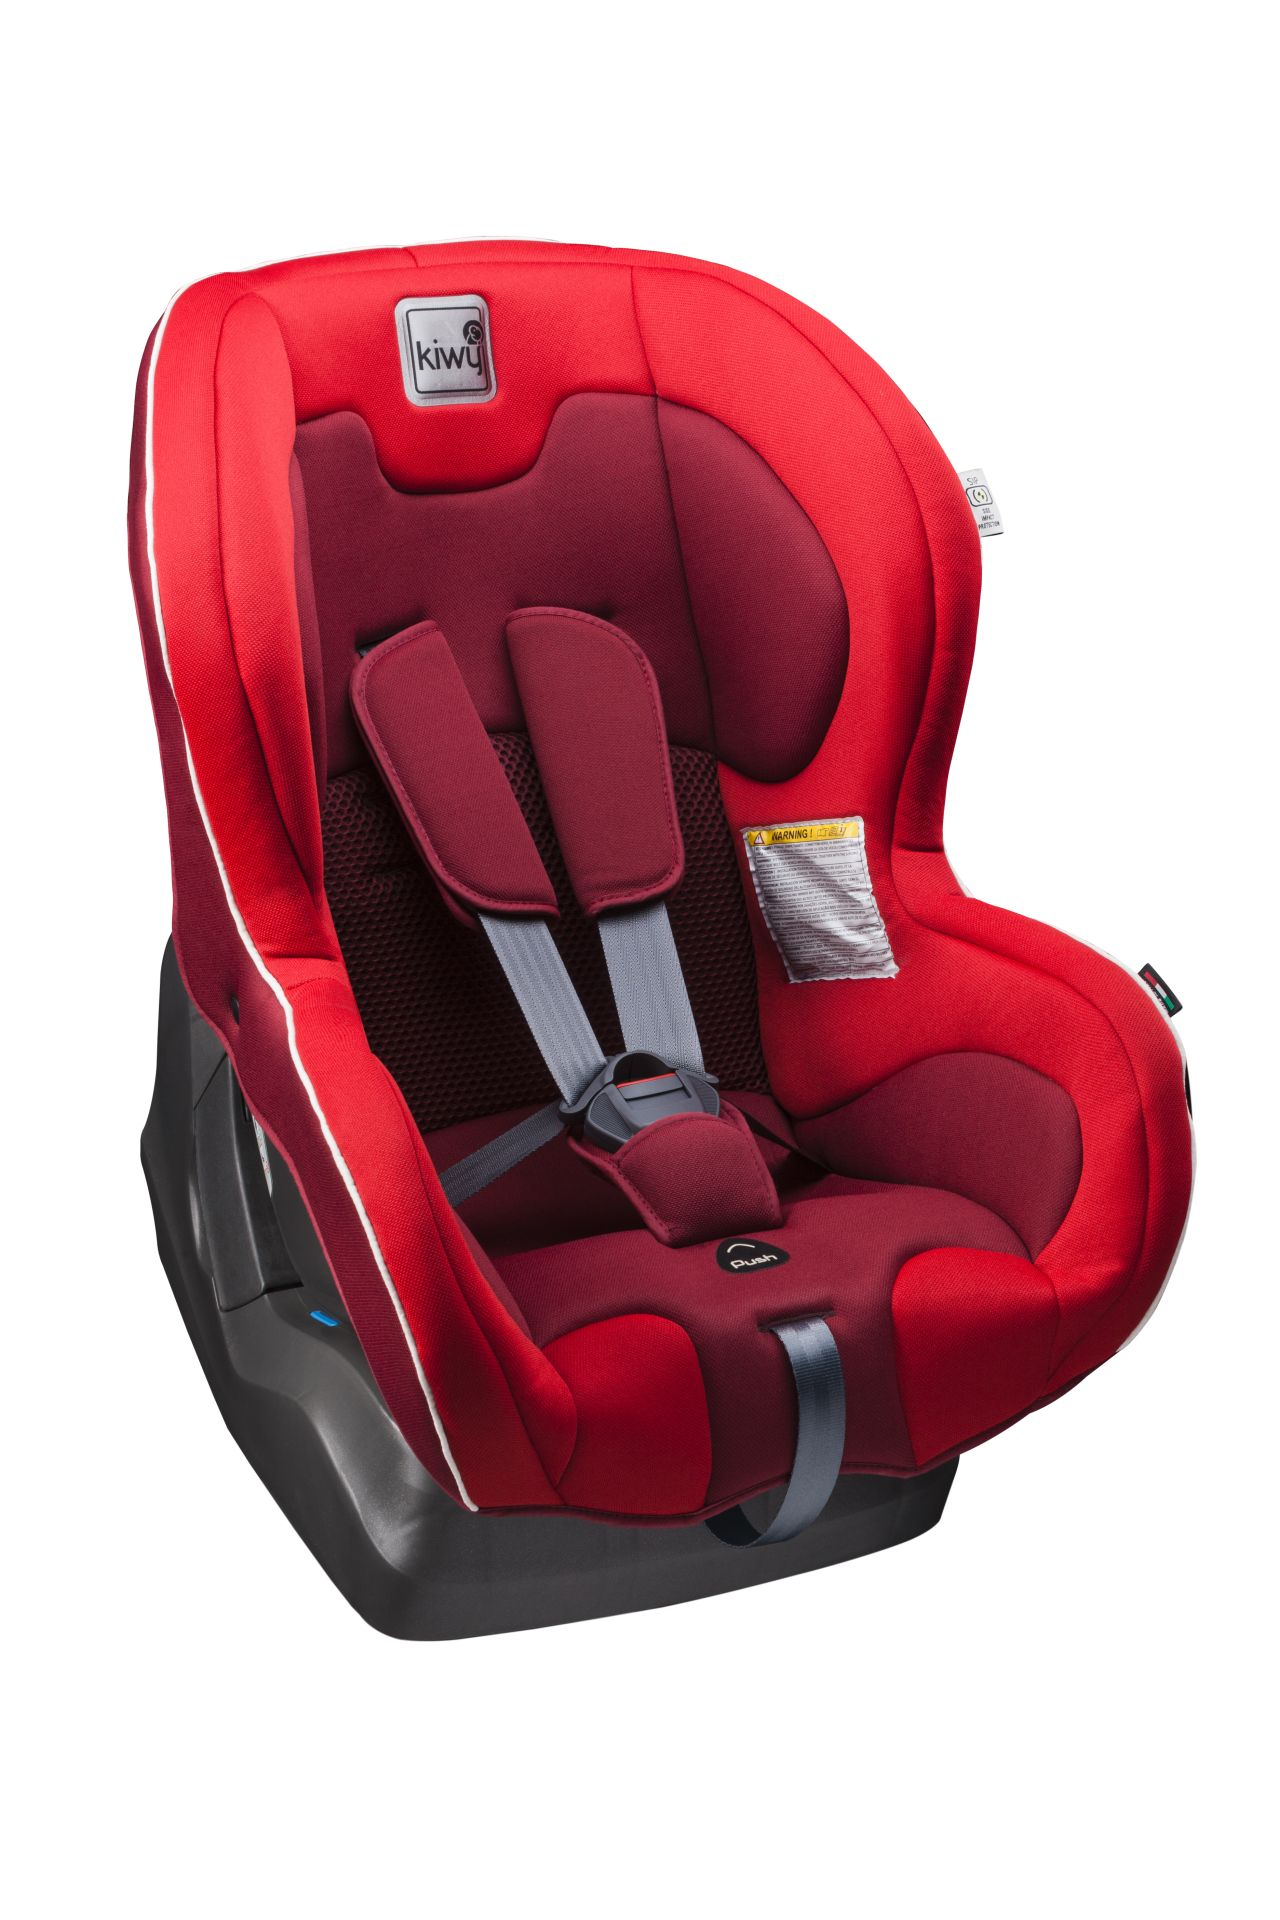 kiwy car seat s01 universal buy at kidsroom car seats. Black Bedroom Furniture Sets. Home Design Ideas